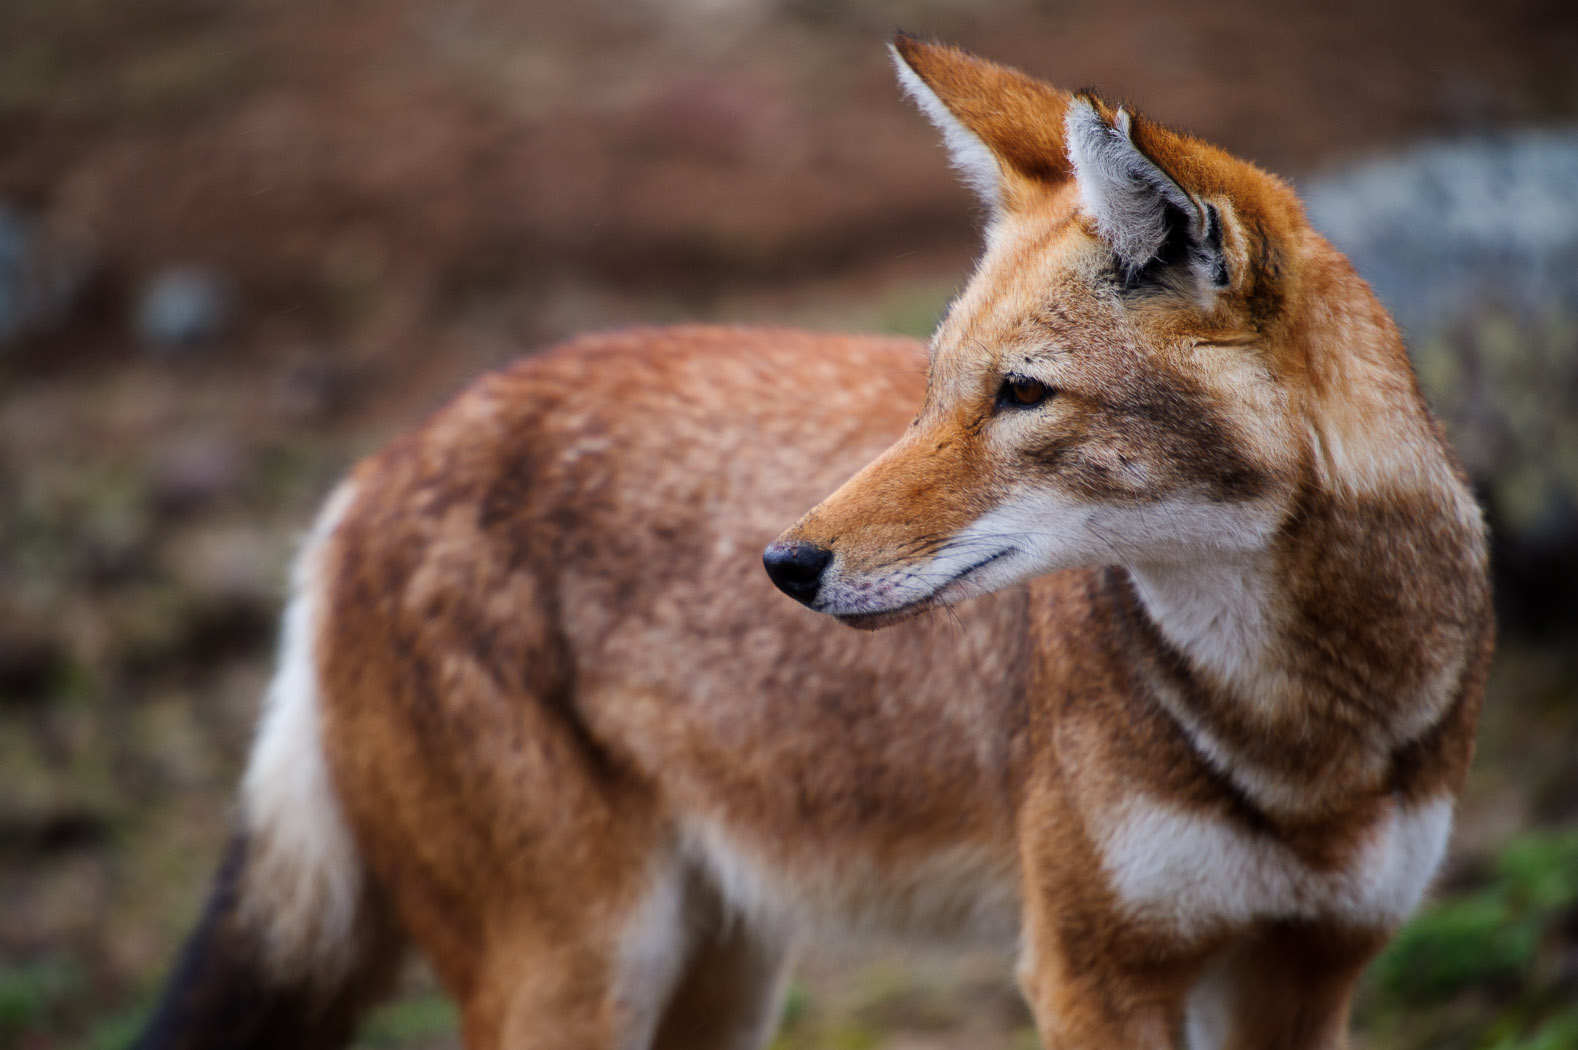 An Ethiopian Wolf stands on the highlands of the Sanetti Plateau in the Bale mountains of Ethiopia. Conservationists are trying to preserve their environment and protect them from diseases that have ravaged the population, such as rabies and canine distemper.